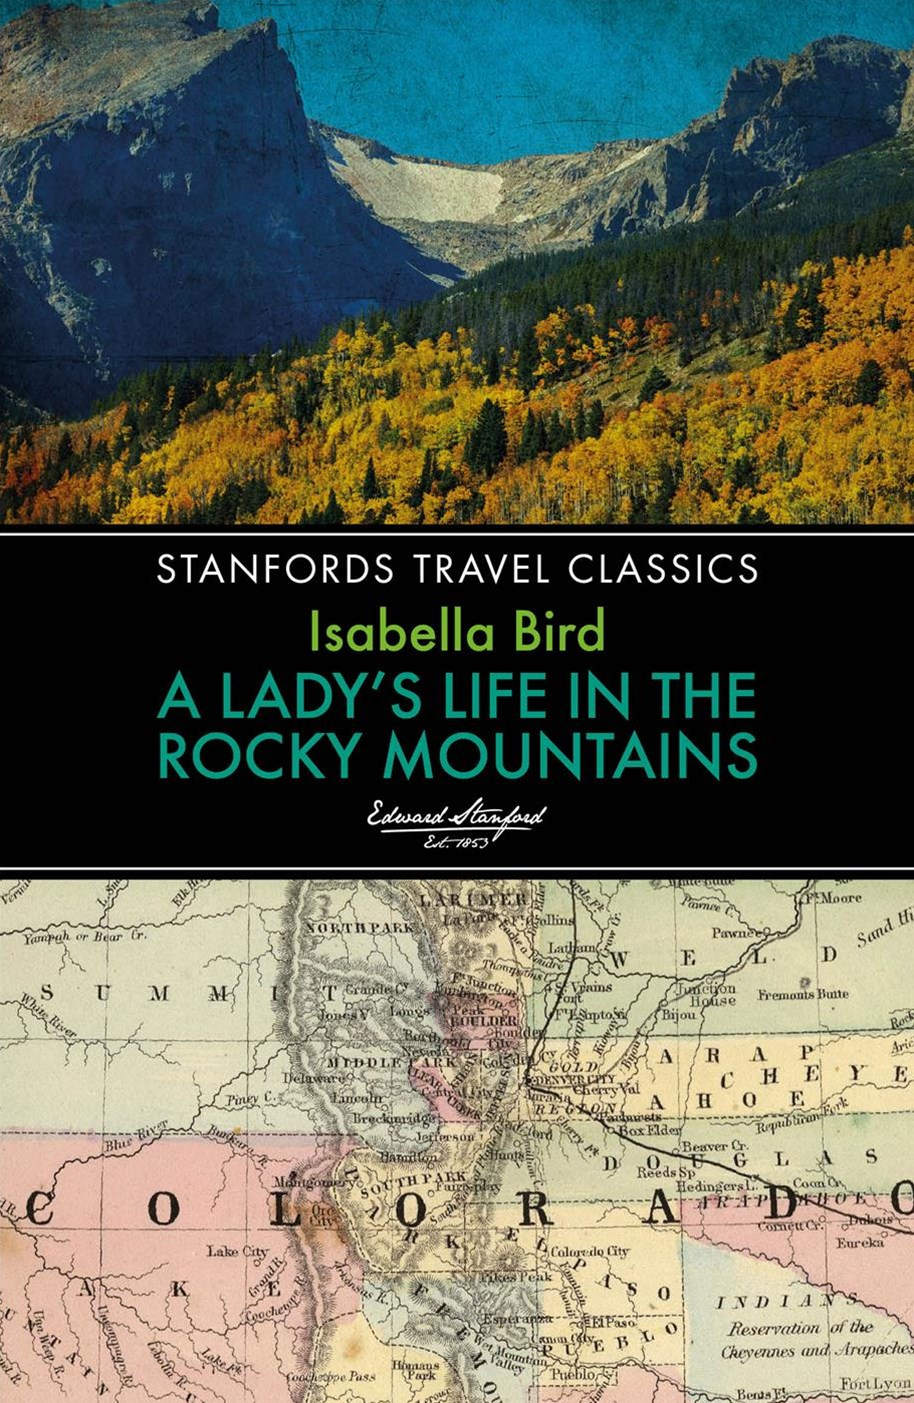 Lady's Life in the Rocky Mountains